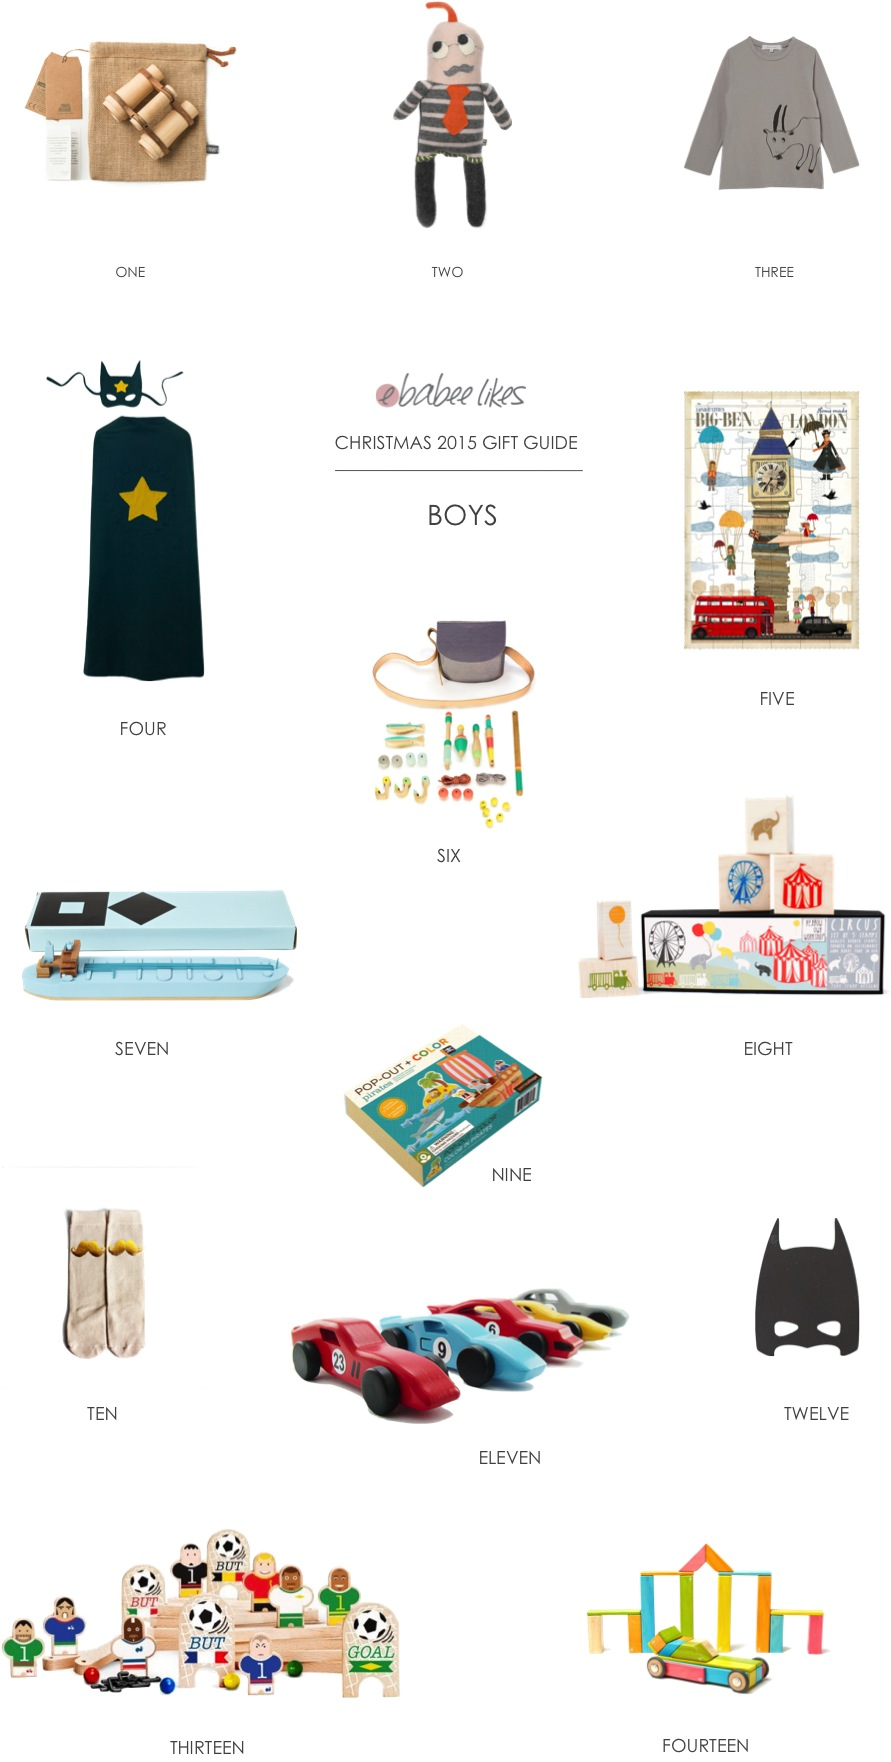 Christmas gift ideas for 5 year old boys